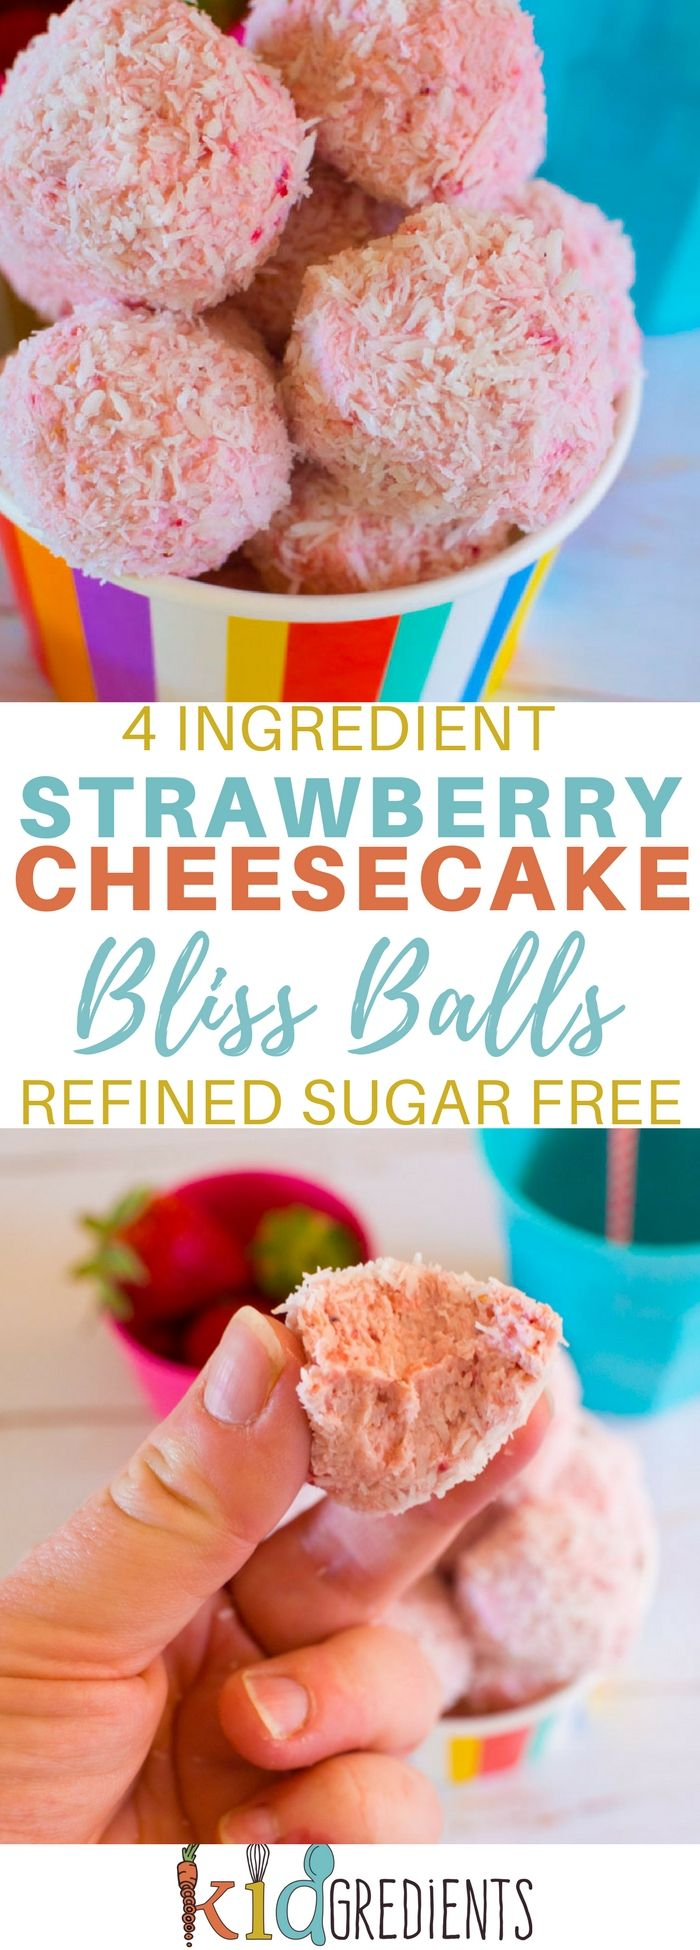 4 ingredient strawberry cheesecake bliss balls! Yummy, easy to make recipe that is kid friendly and freezer friendly! #recipe #cheesecake #strawberry #blissballs